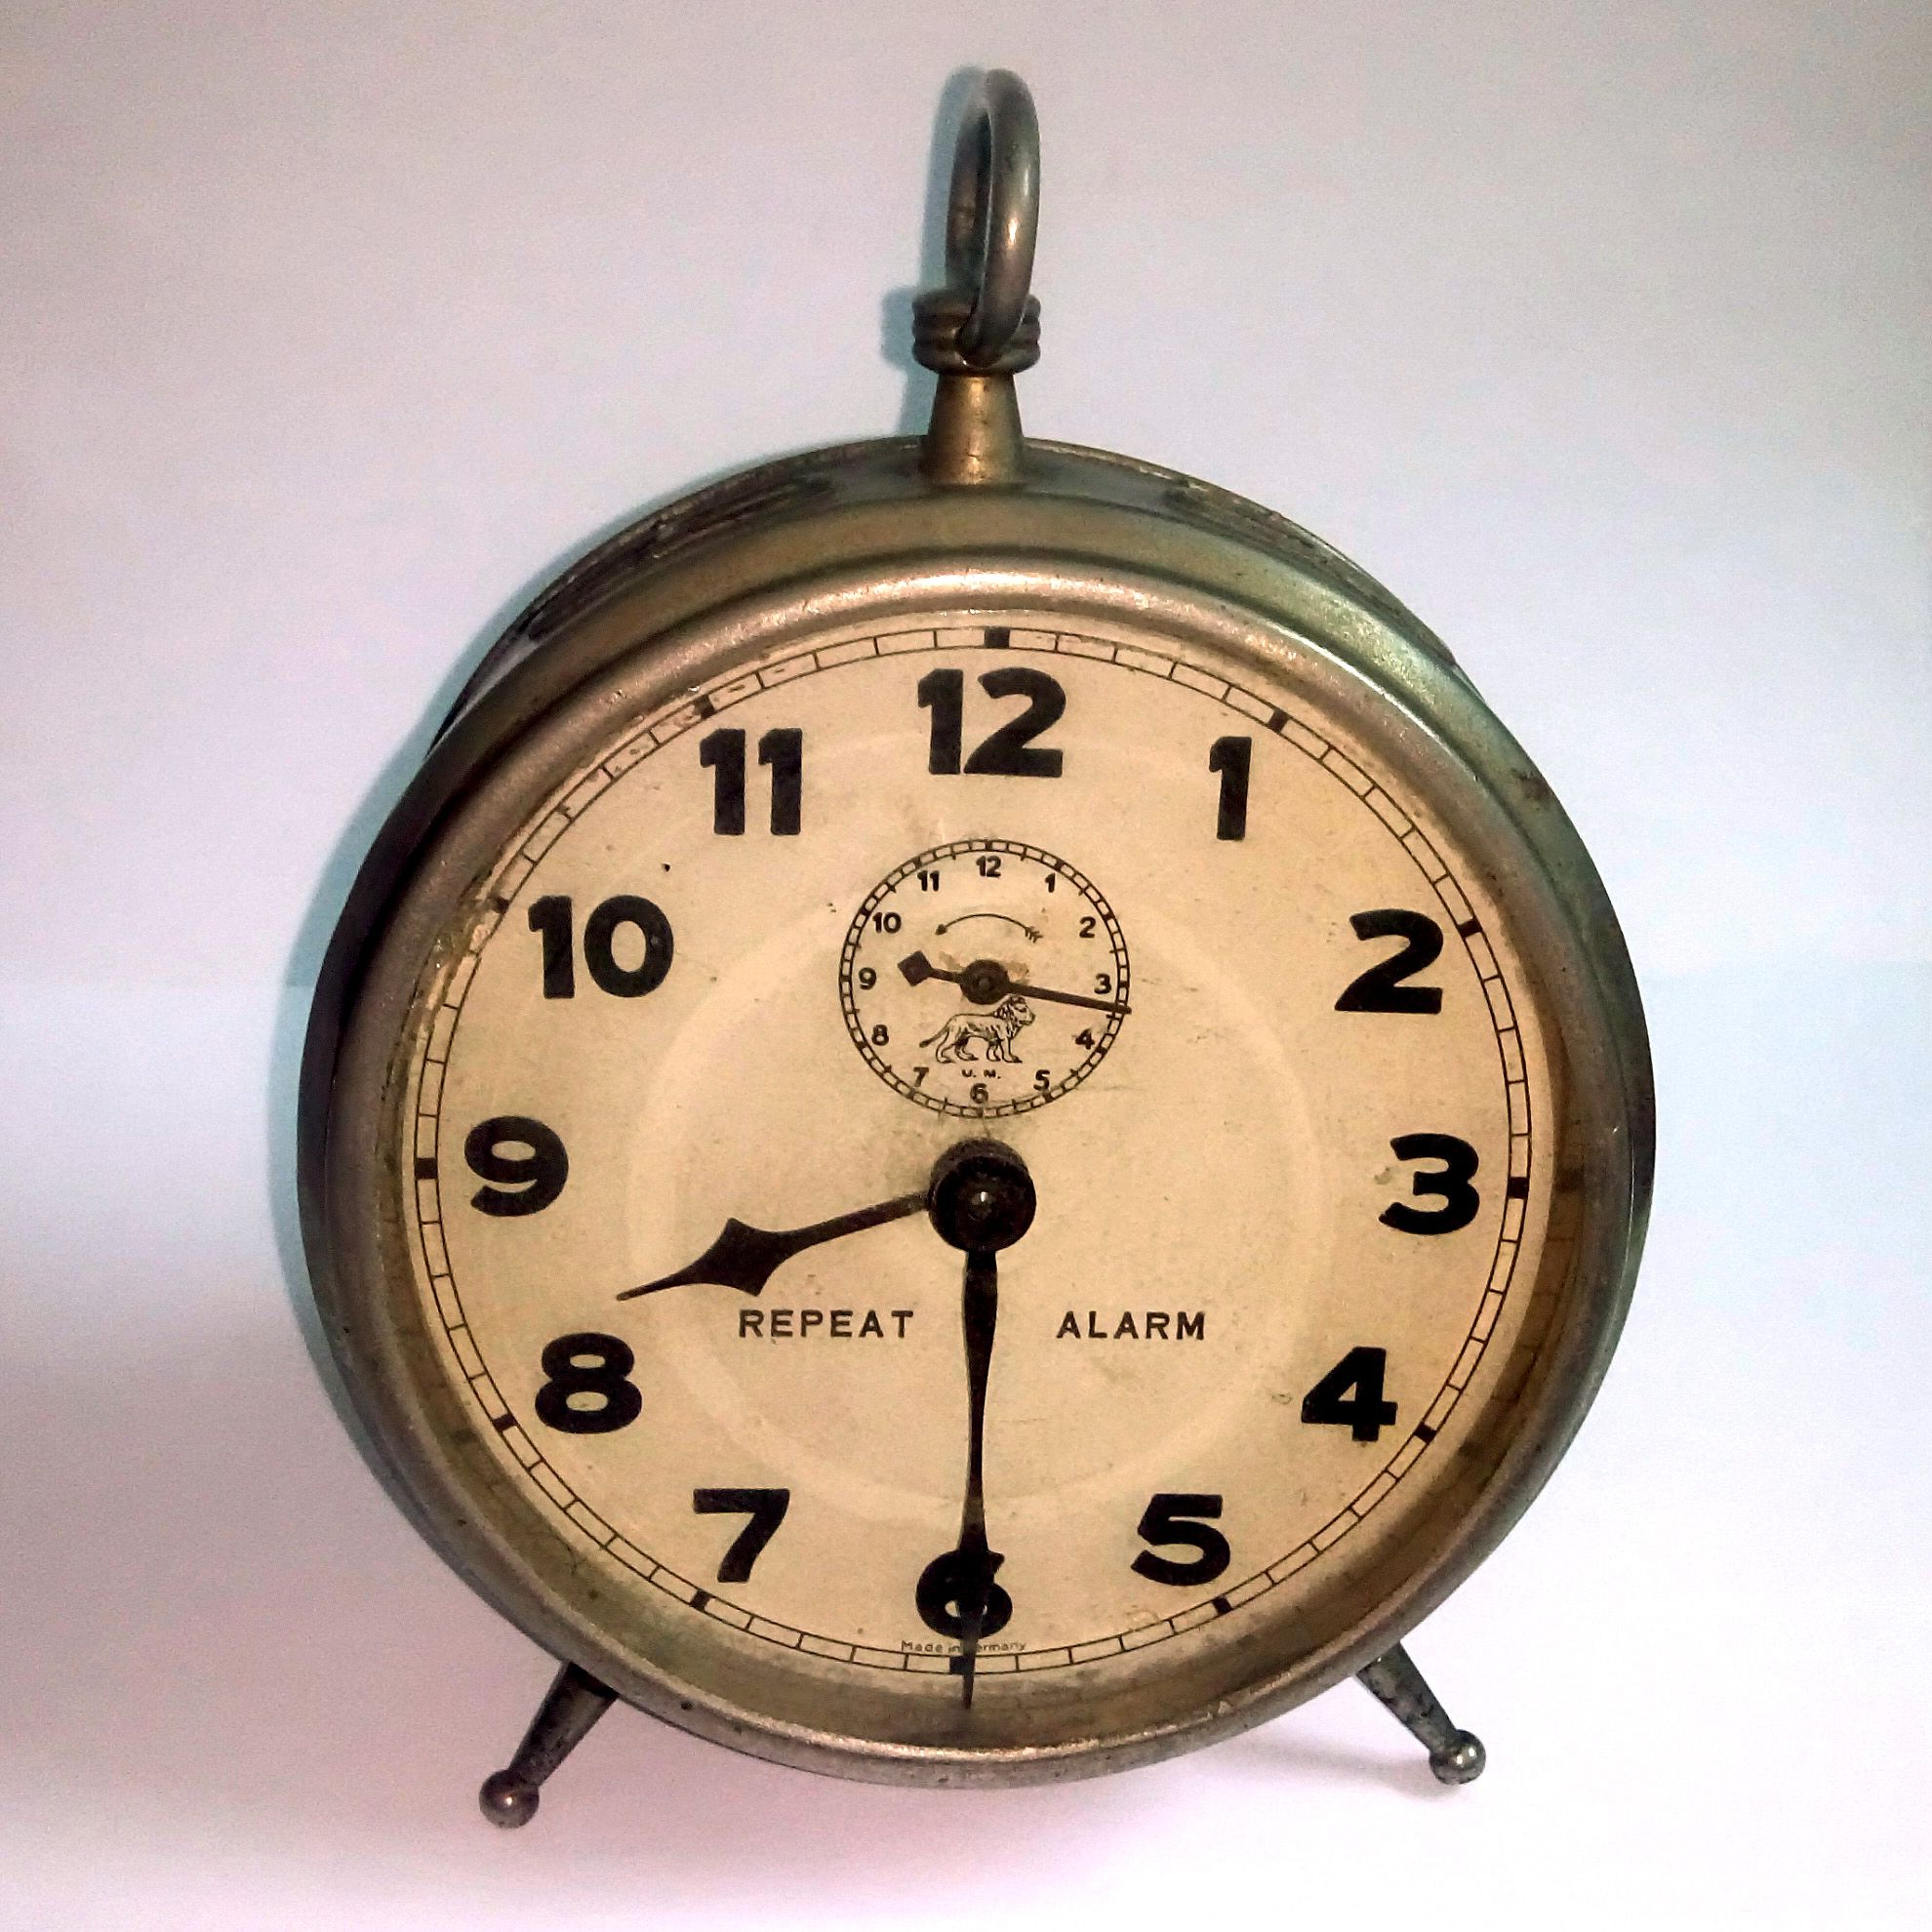 Antique alarm clock made in Germany about 1910-1930. Has a ...